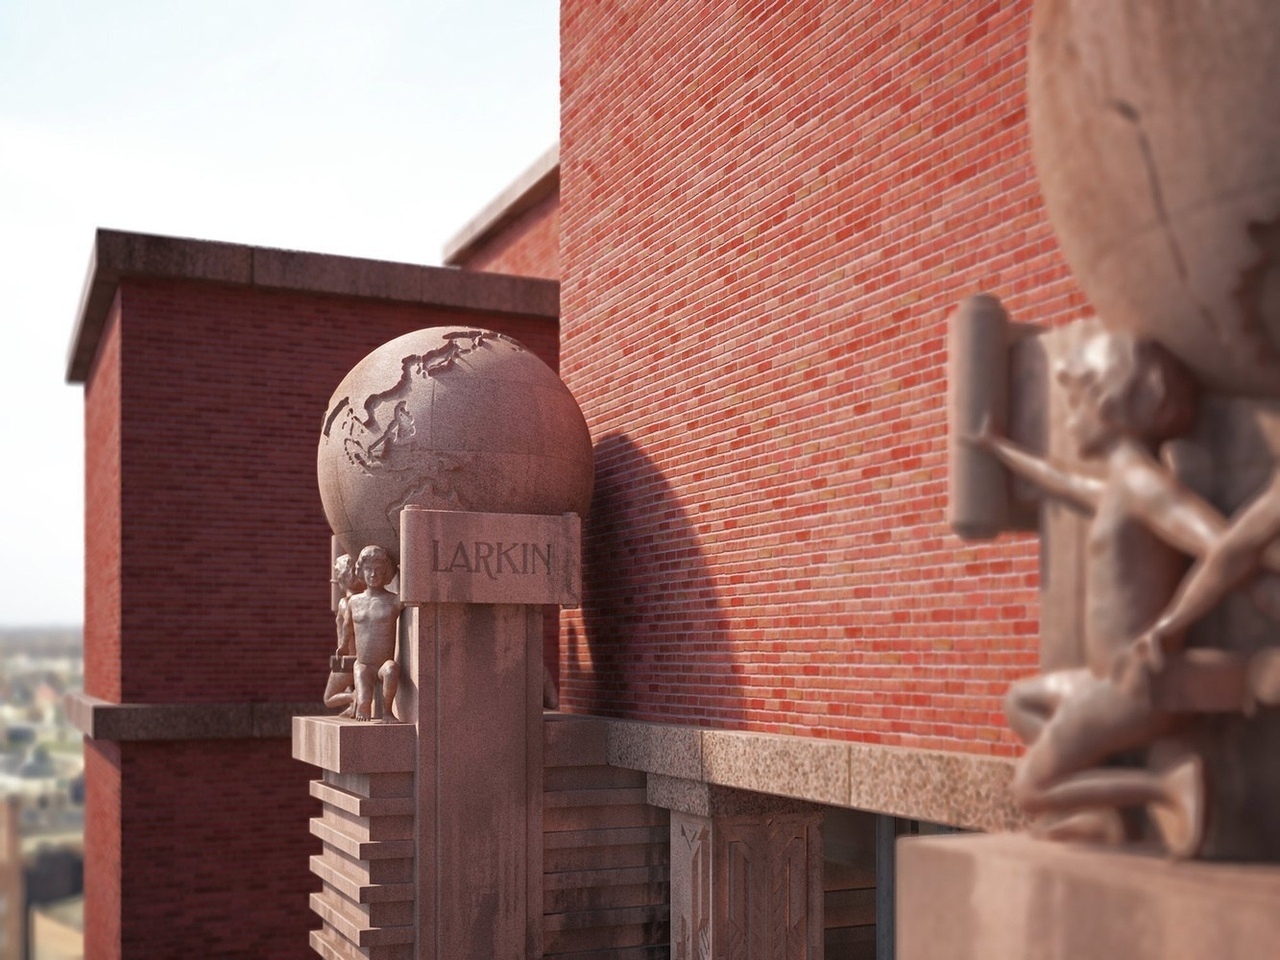 See Frank Lloyd Wright's Missing Works Recreated in Photorealistic Renders